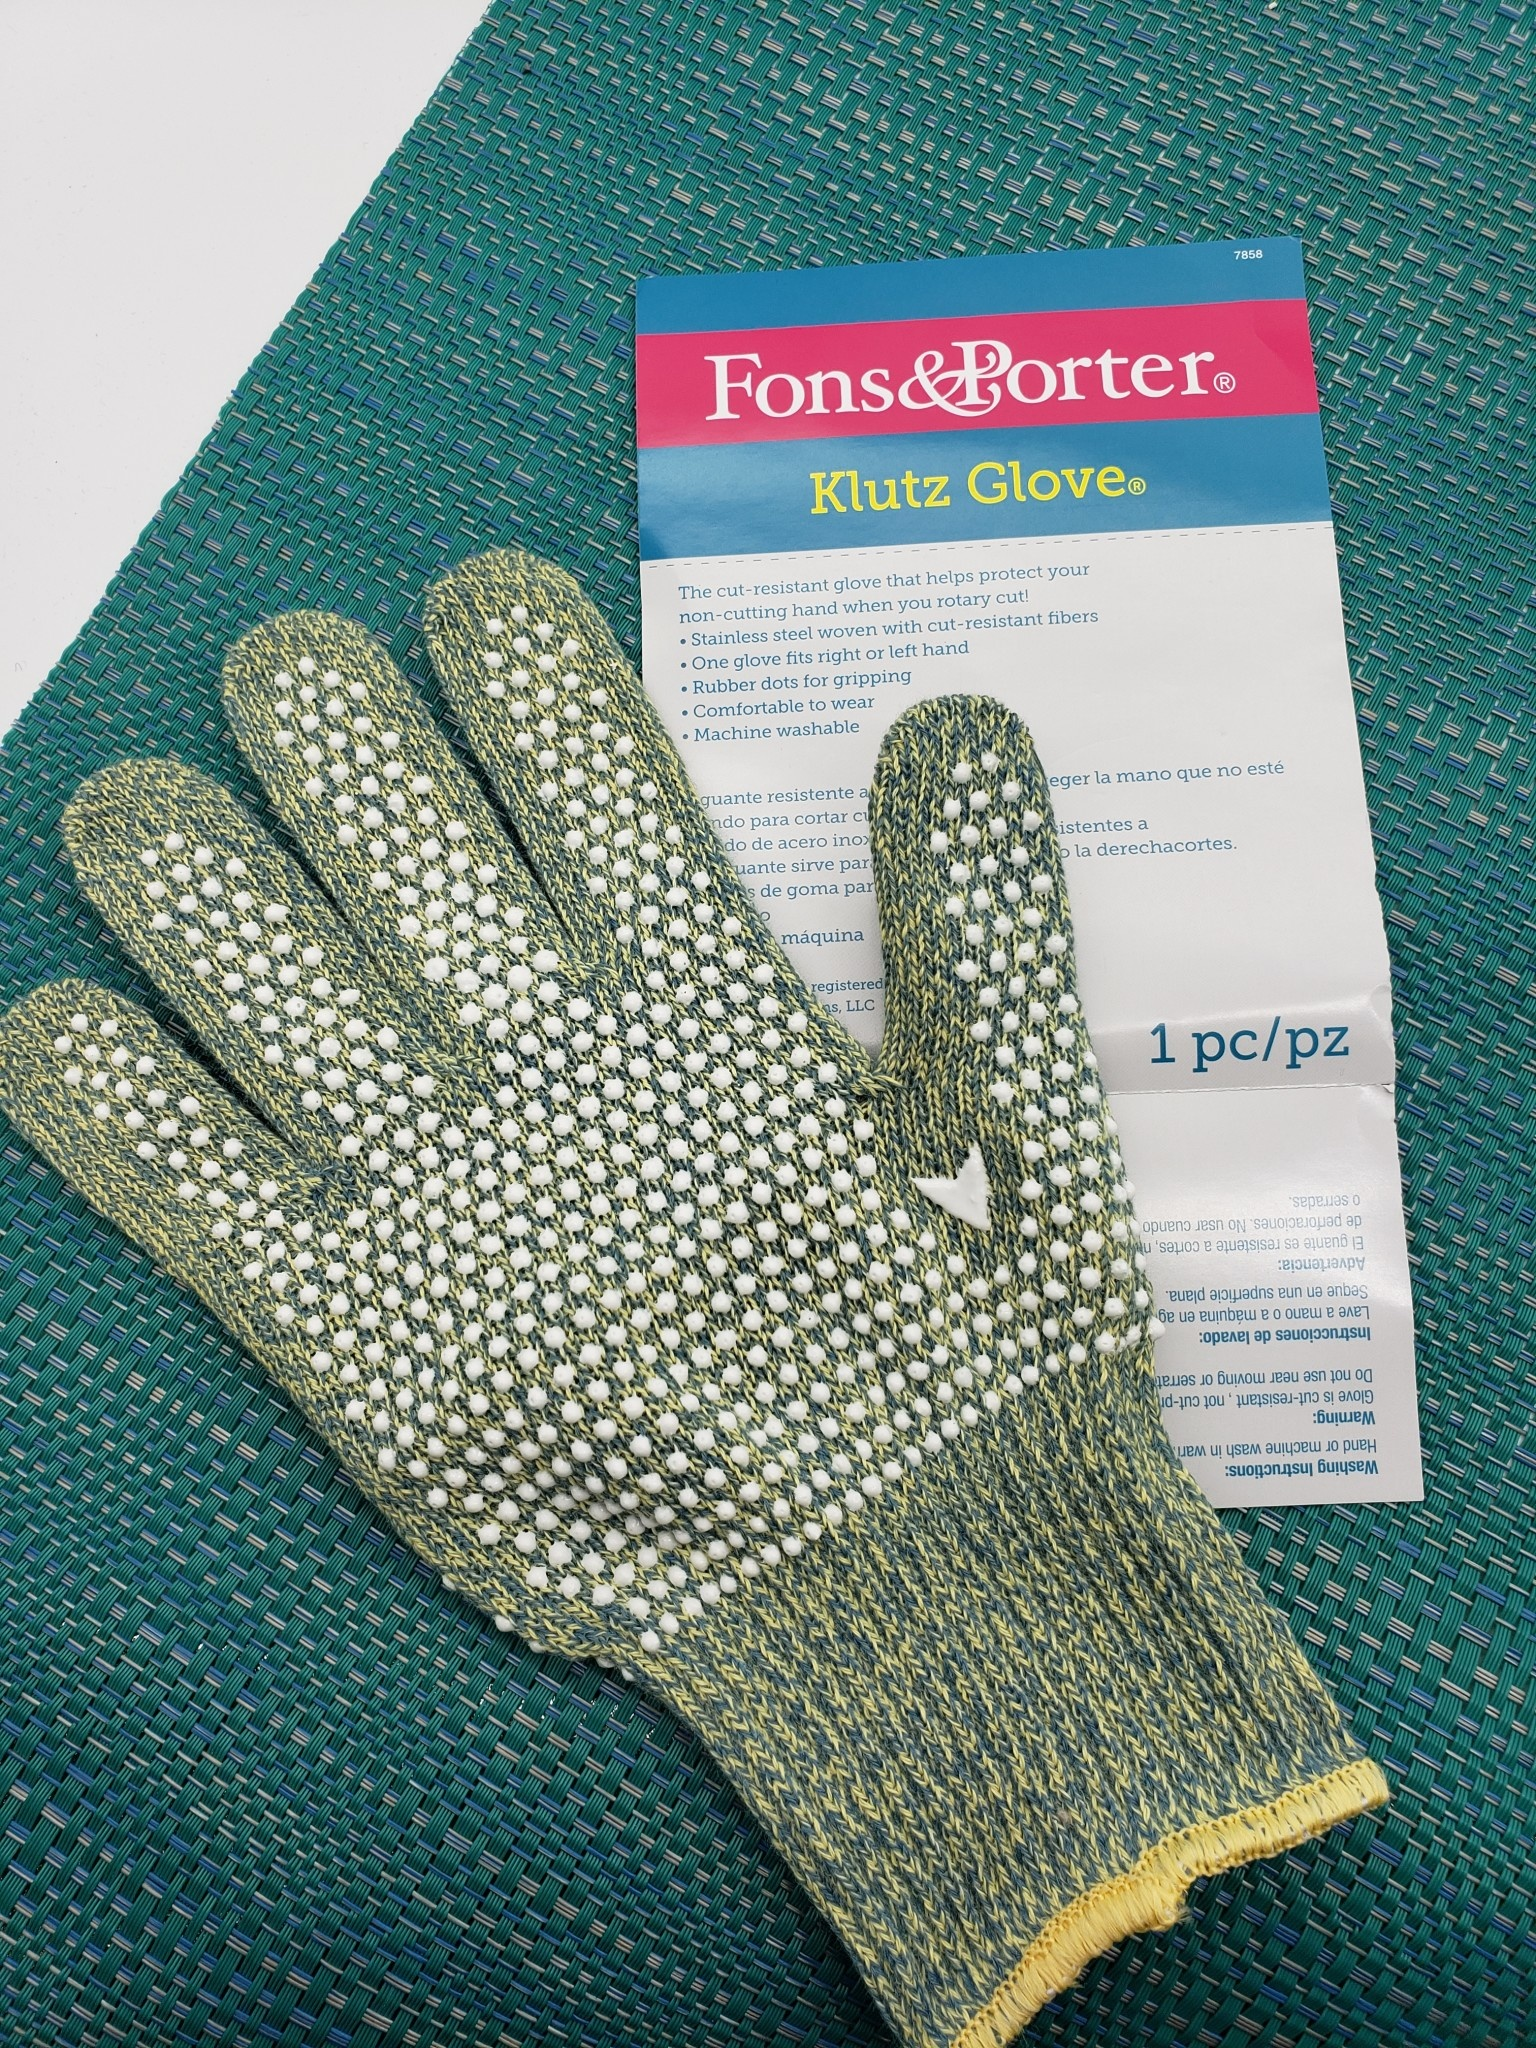 FONS & PORTER KLUTZ GLOVE (SAFE ROTARY CUTTING) LARGE